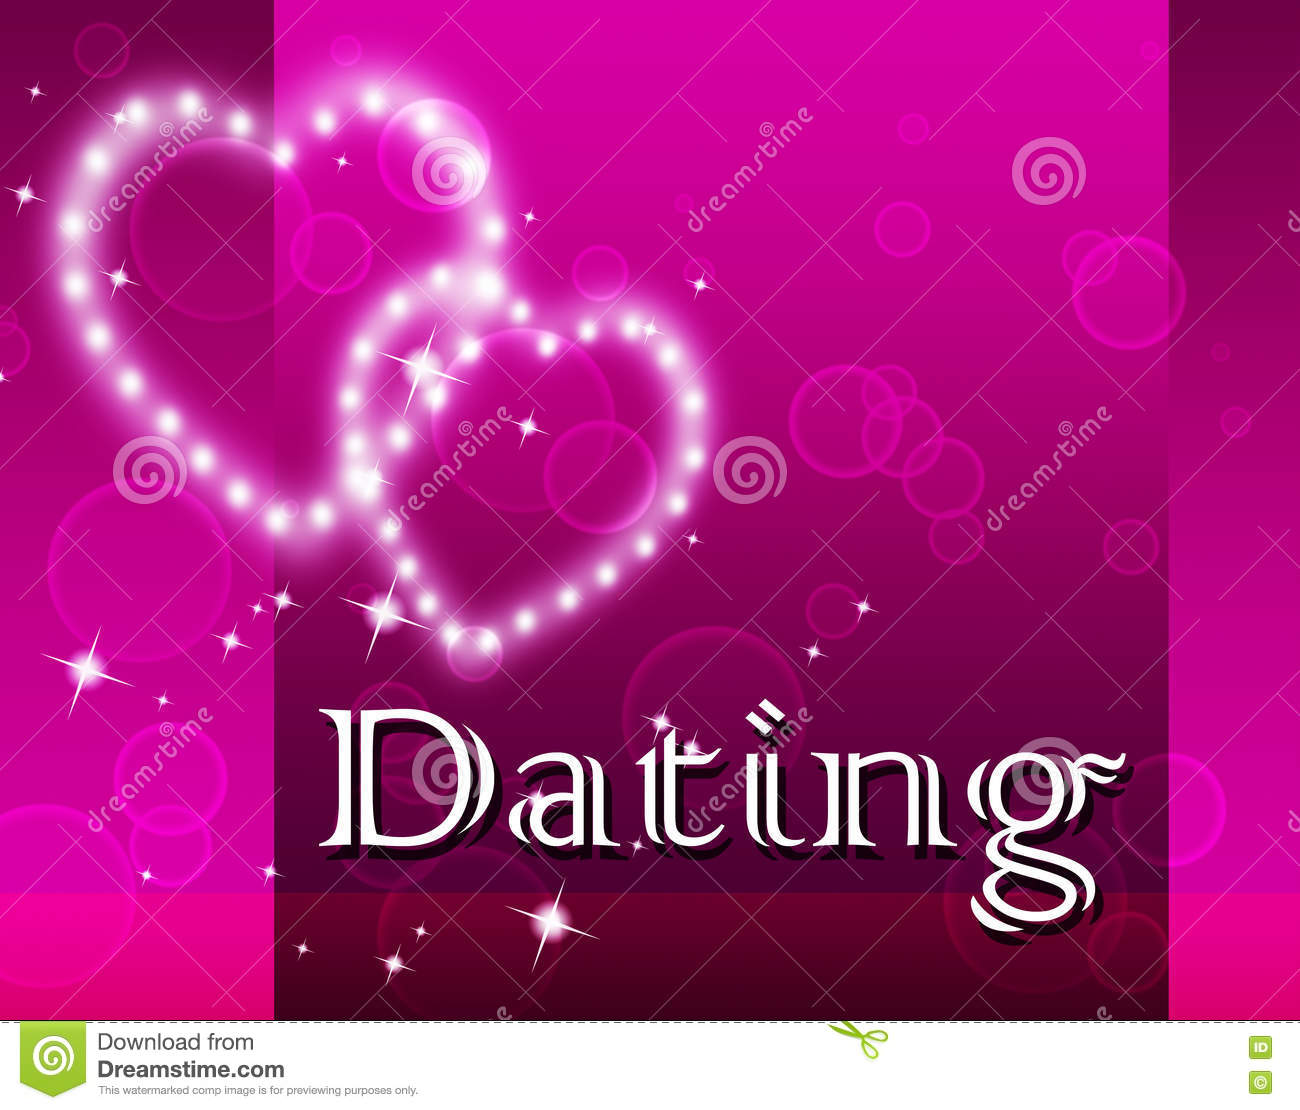 sweetheart dating site)